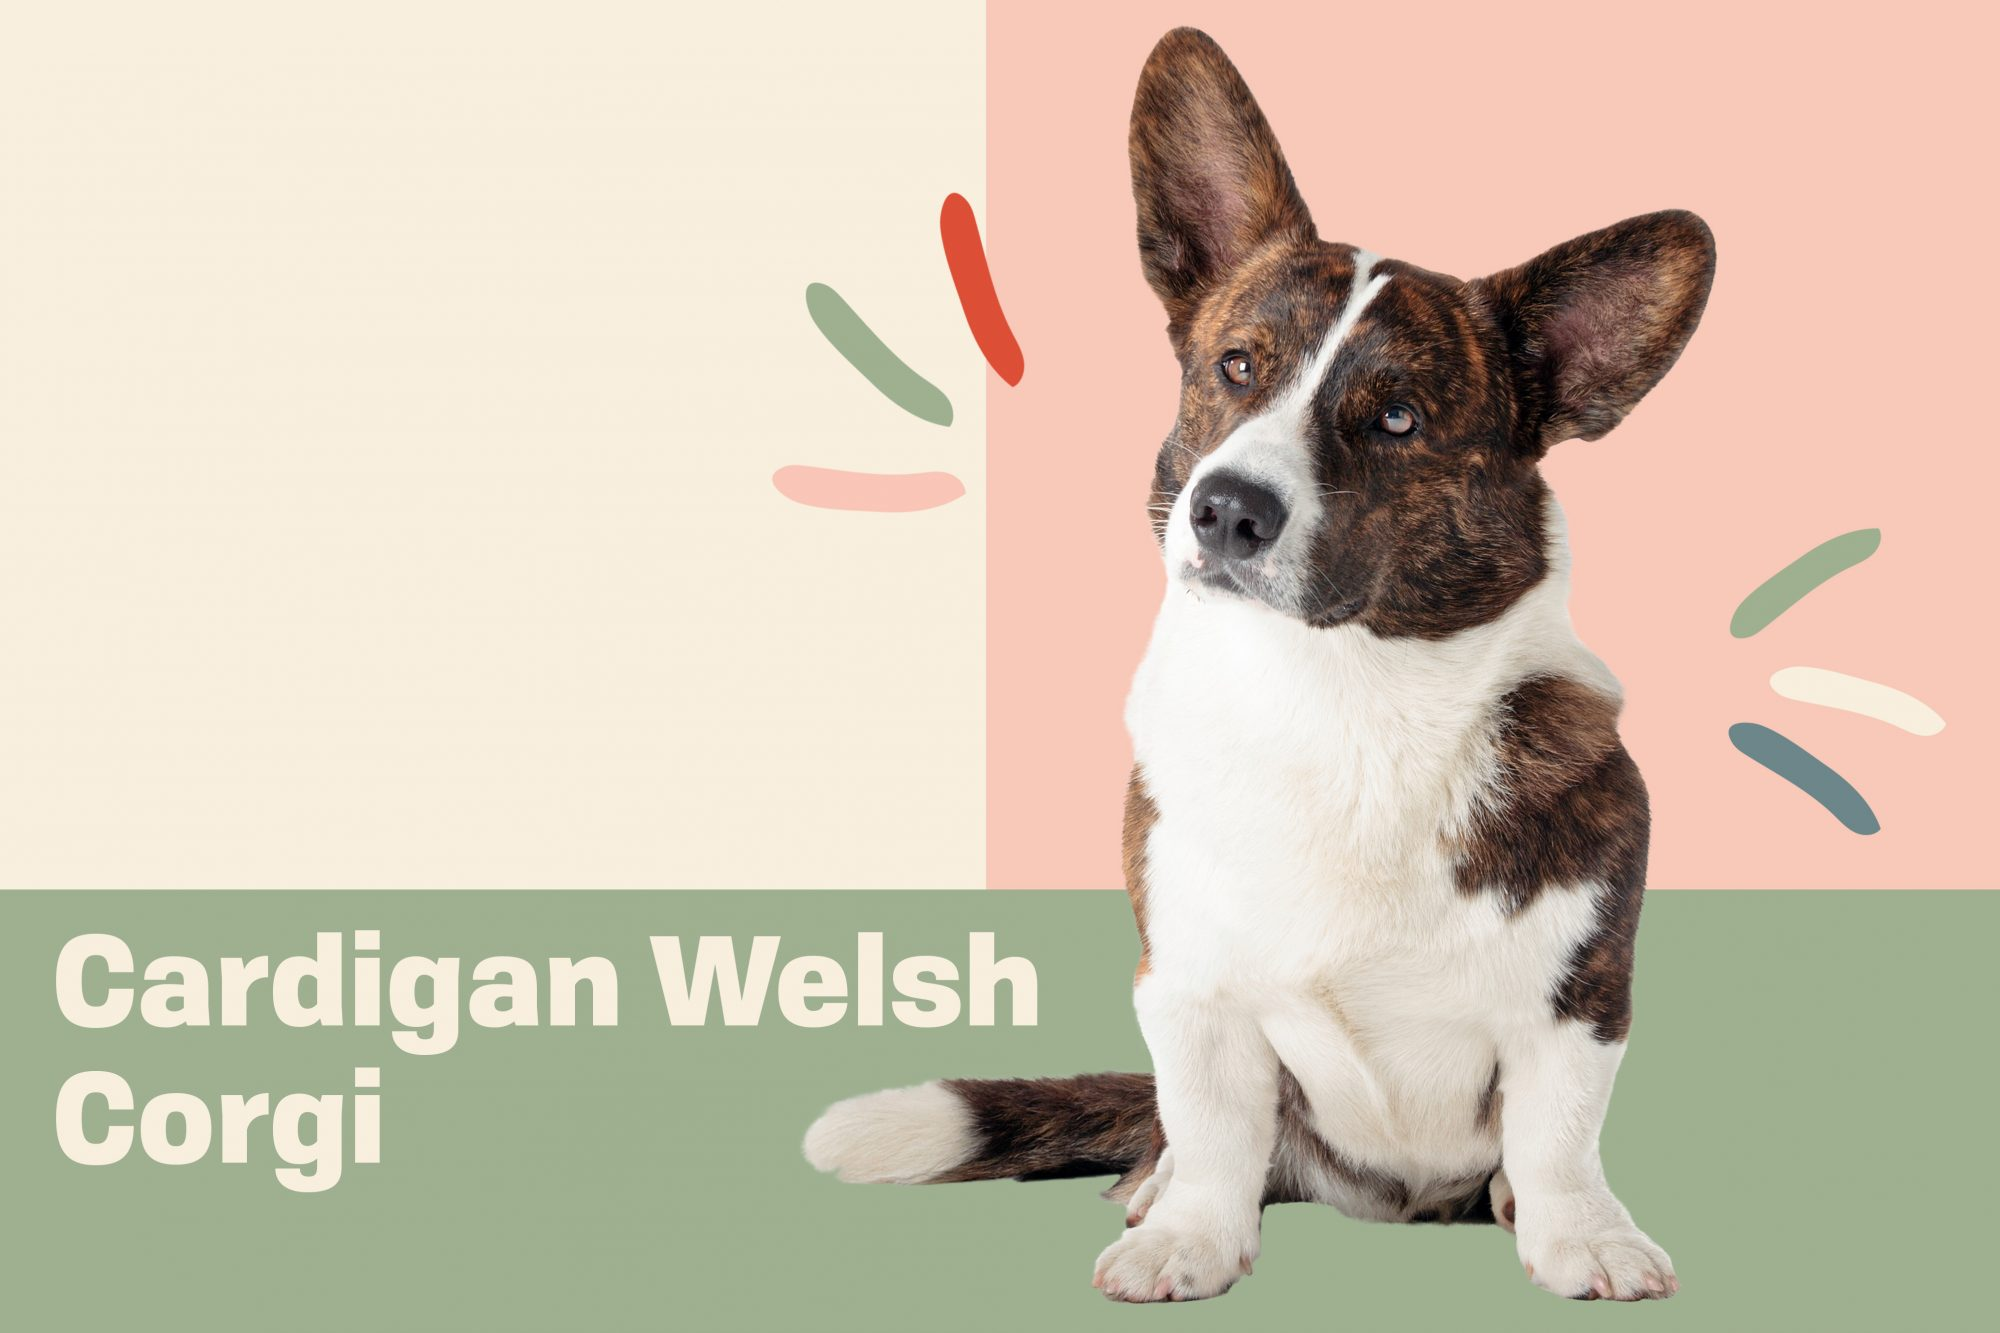 Portrait of Cardigan Welsh Corgi with illustrated embellishments